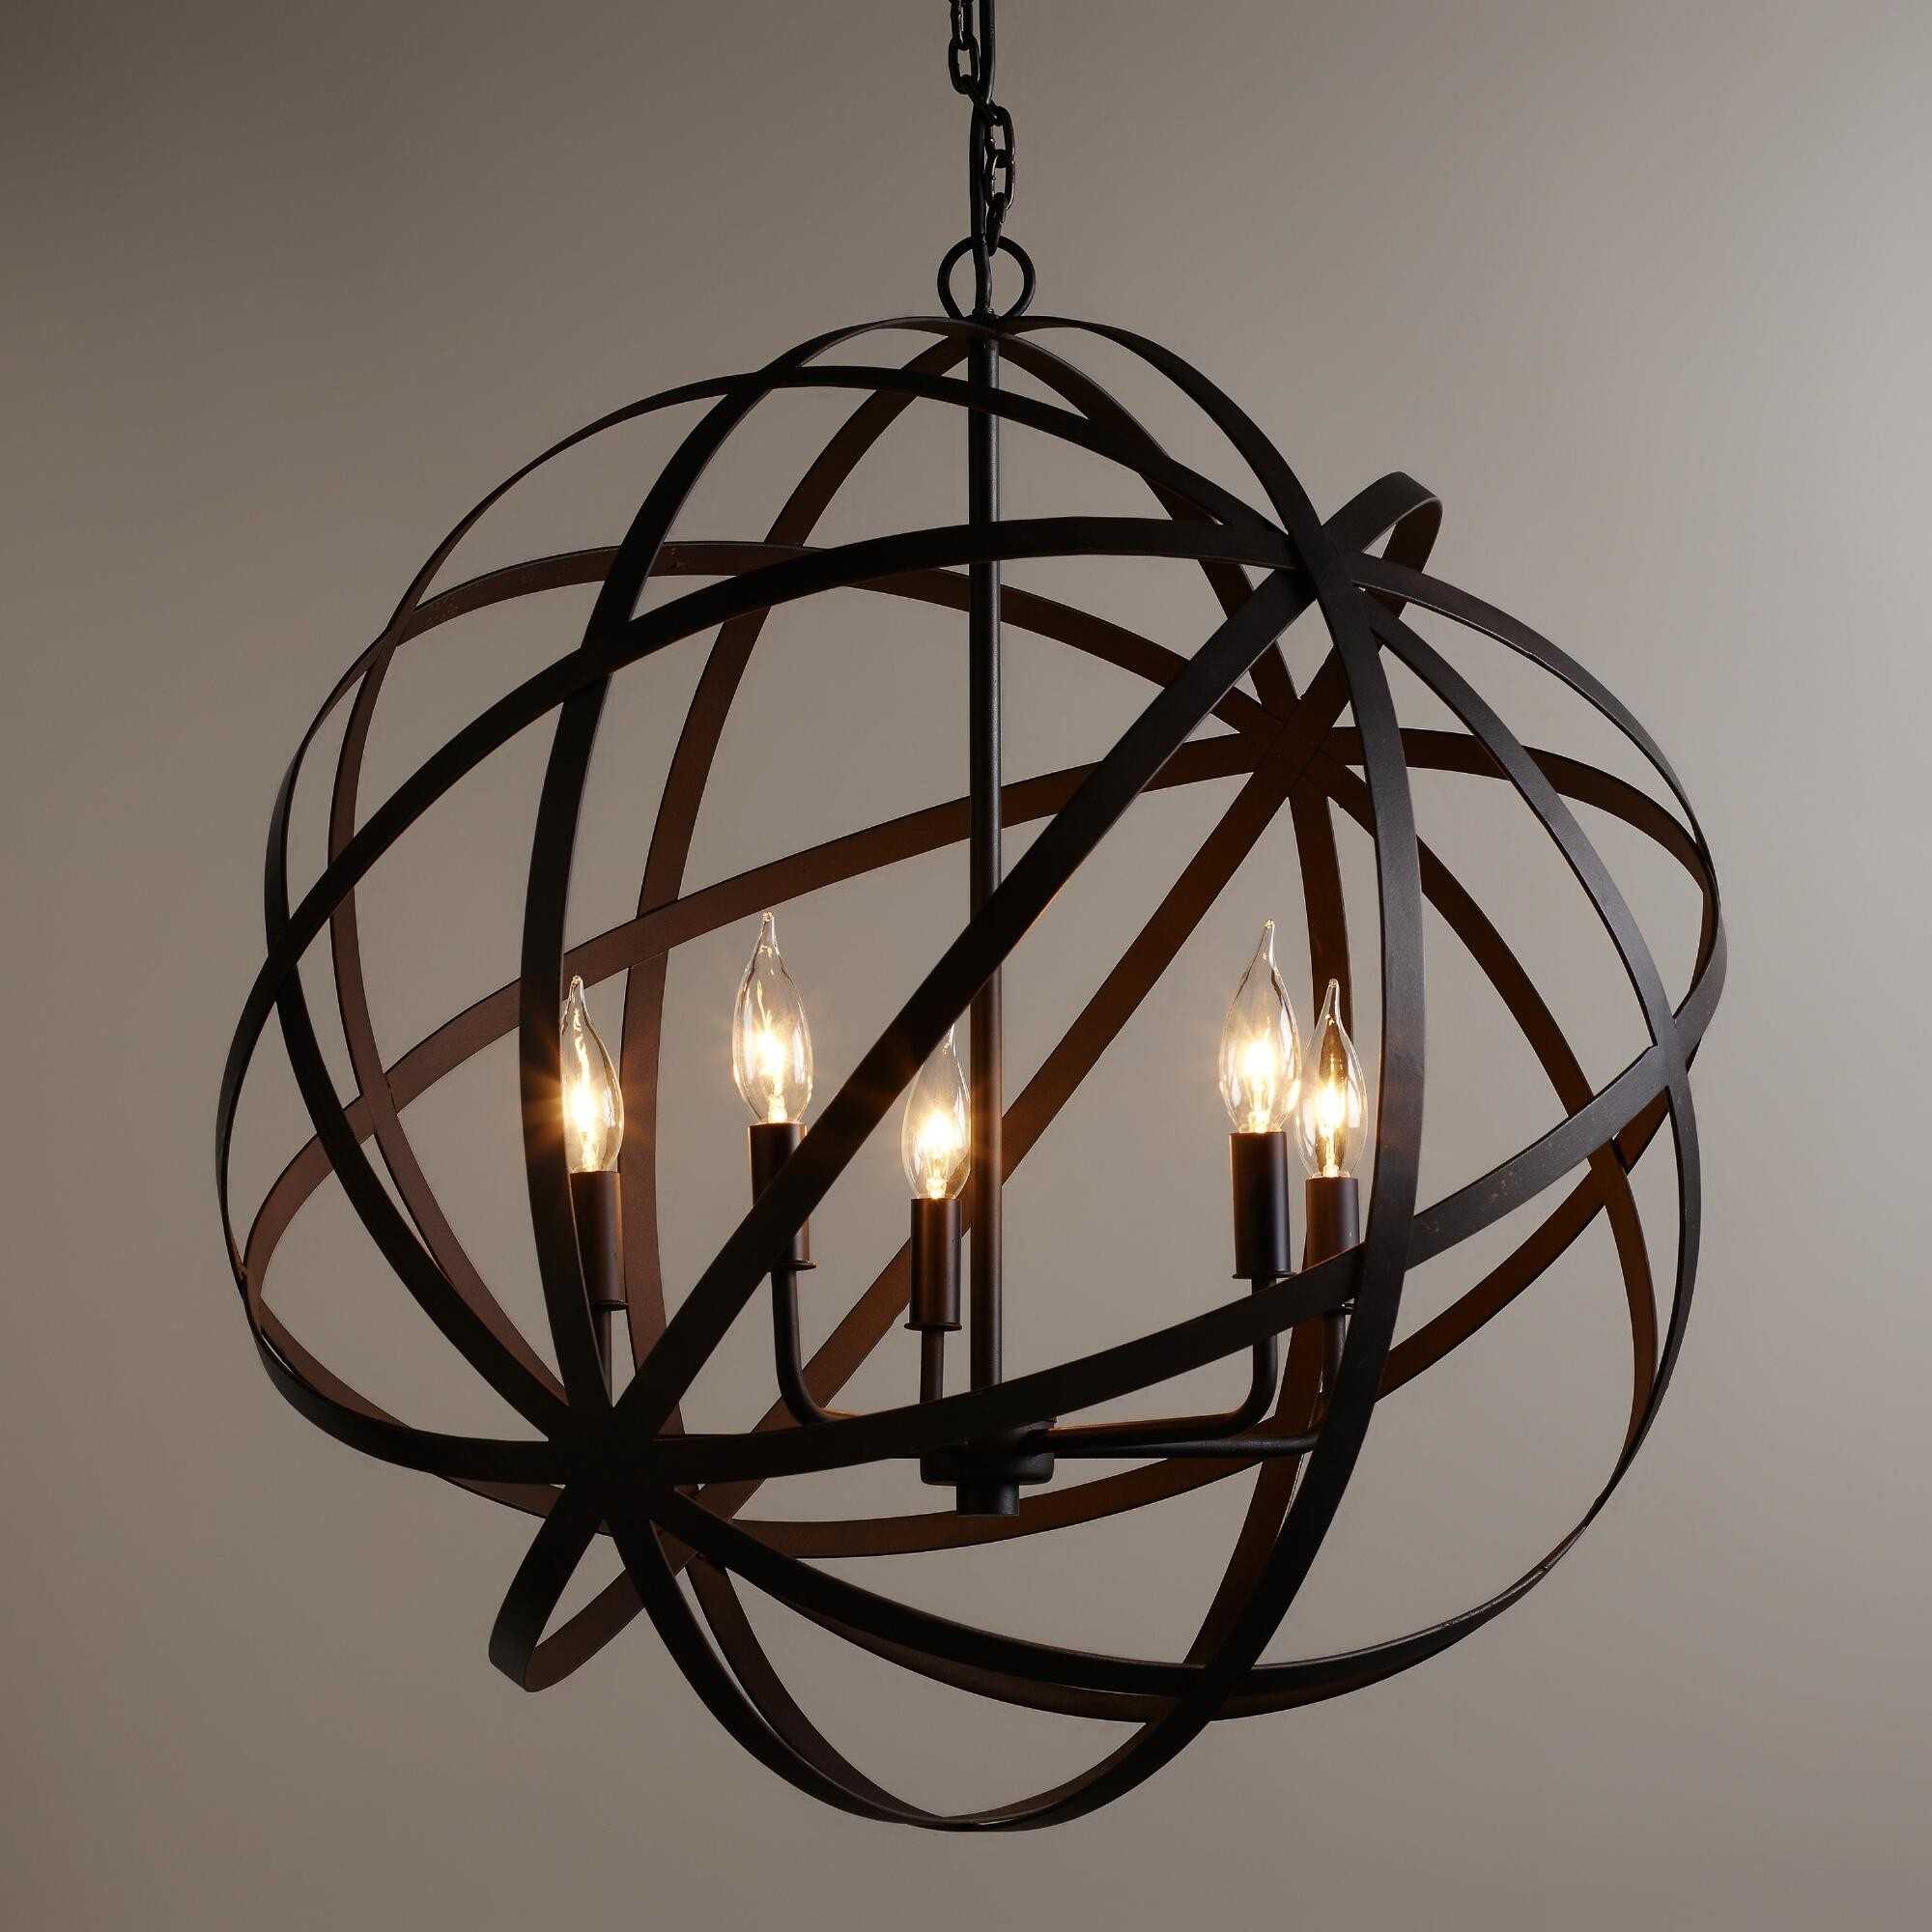 Chandeliers Design : Marvelous Extra Large Outdoor Chandeliers Lamp Regarding Latest Extra Large Outdoor Hanging Lights (Gallery 11 of 20)